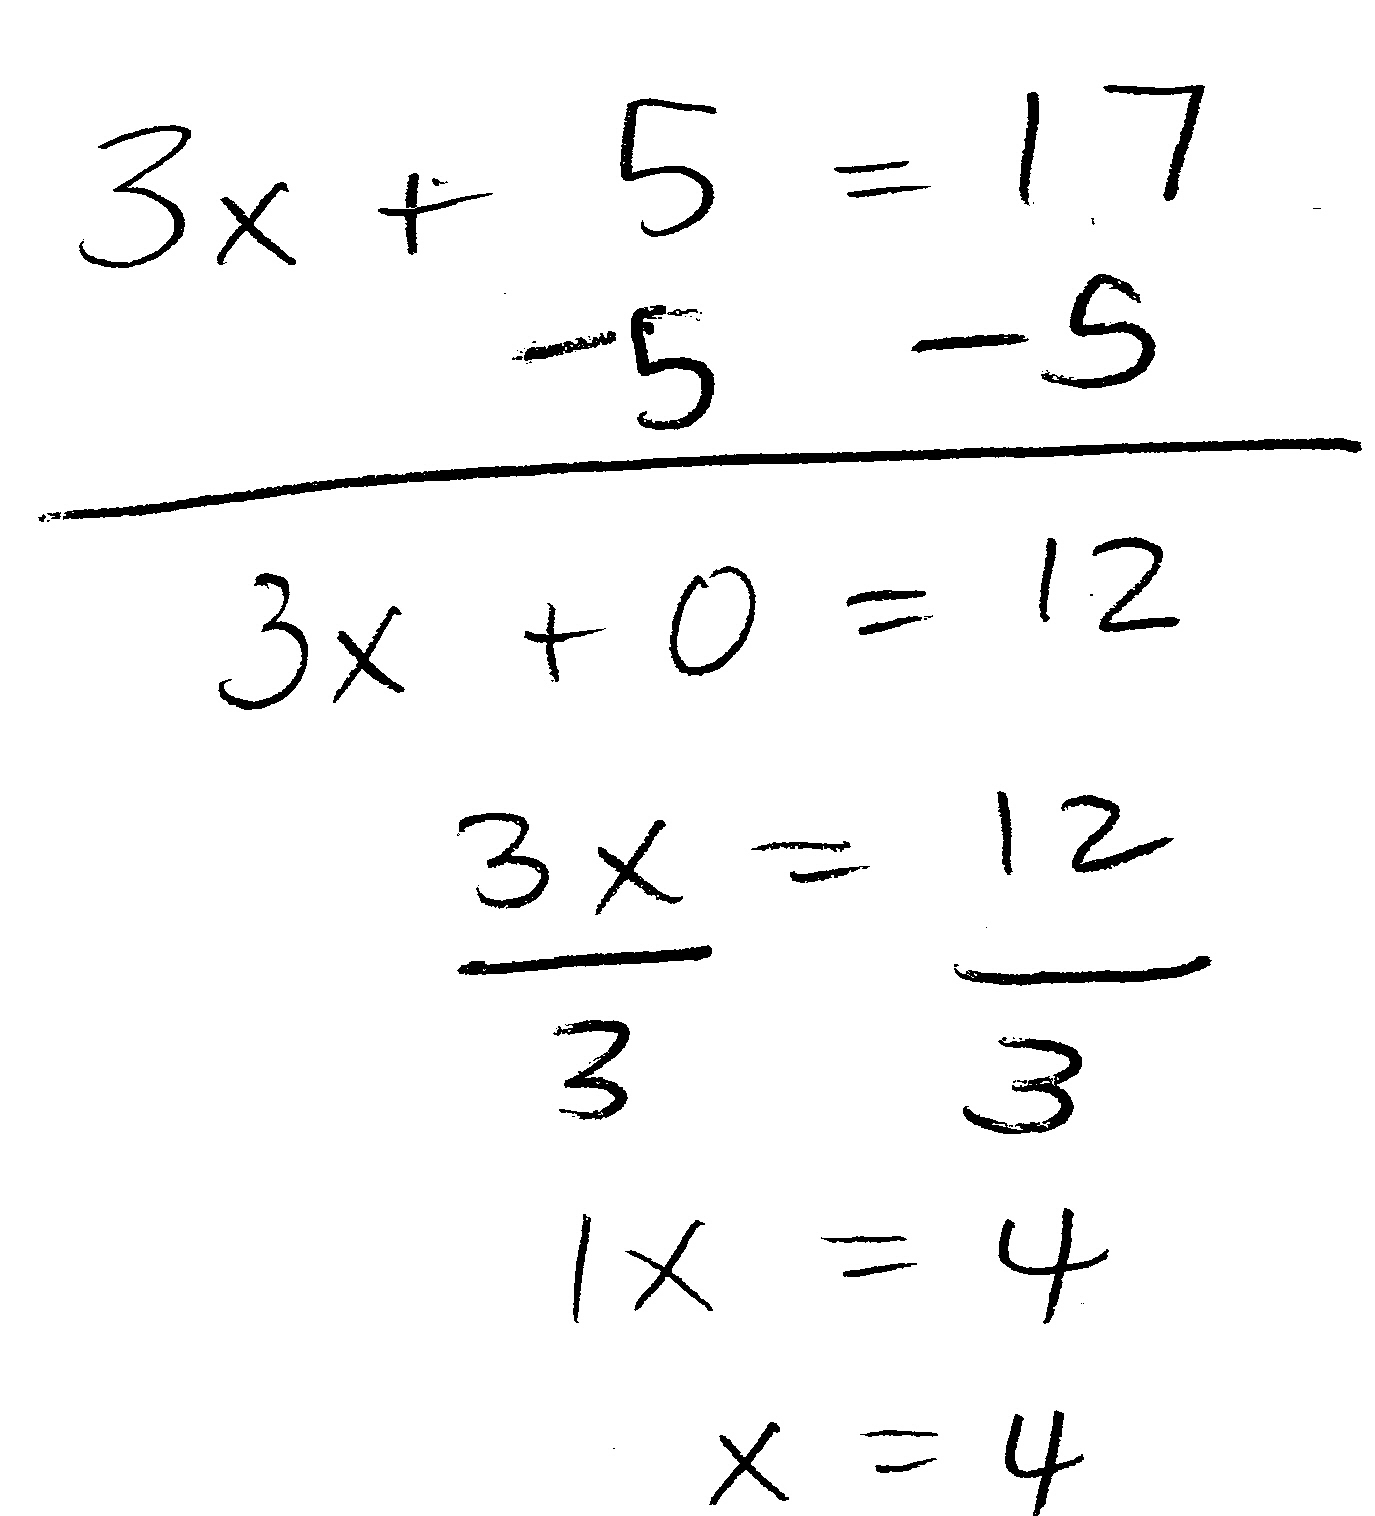 Hard Math Problems For 7th Graders